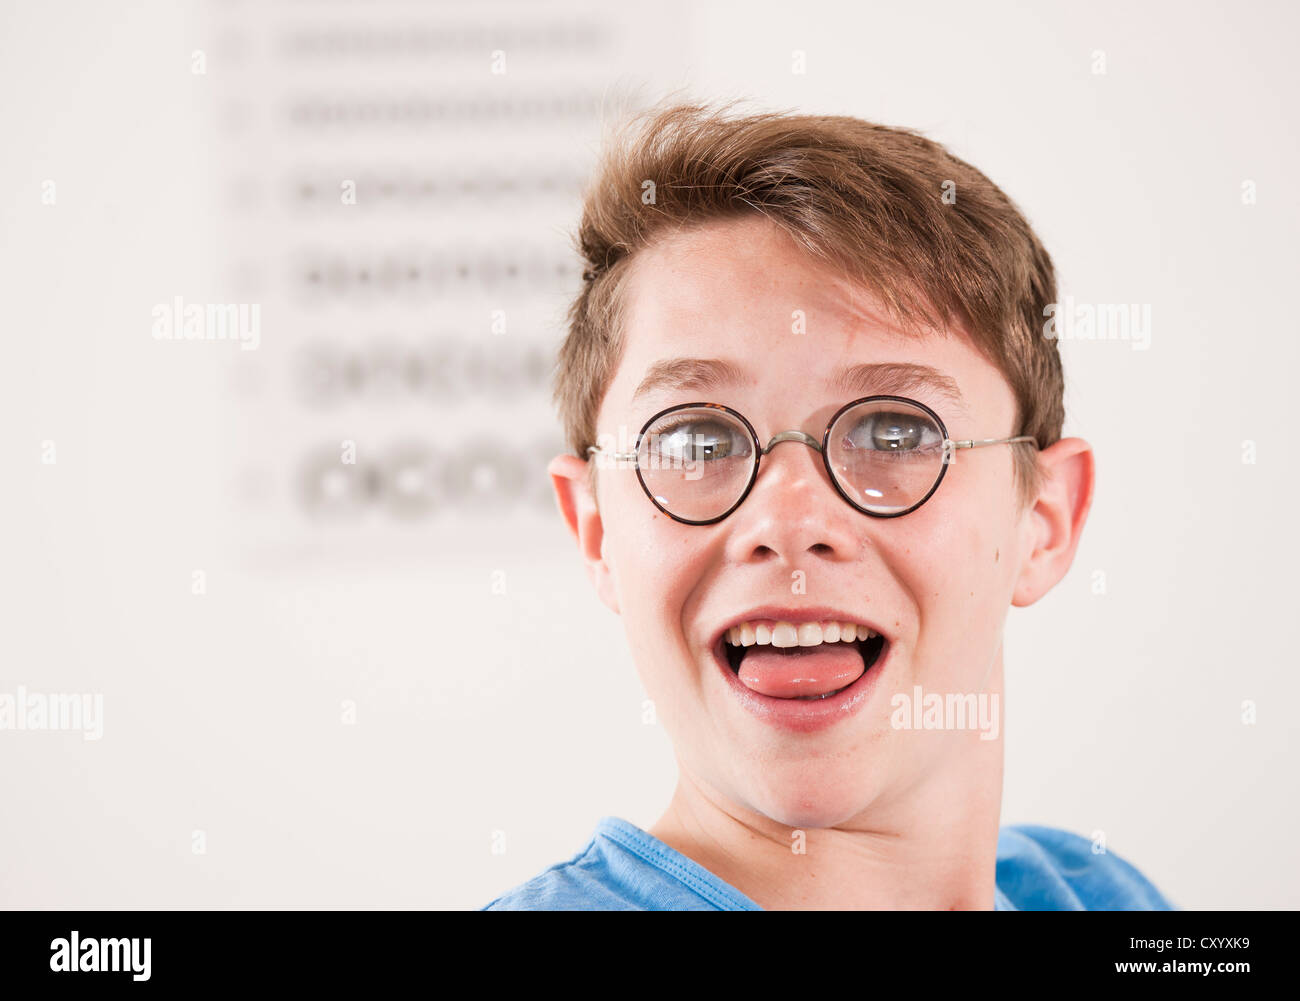 Thick Glasses Stock Photos & Thick Glasses Stock Images ...